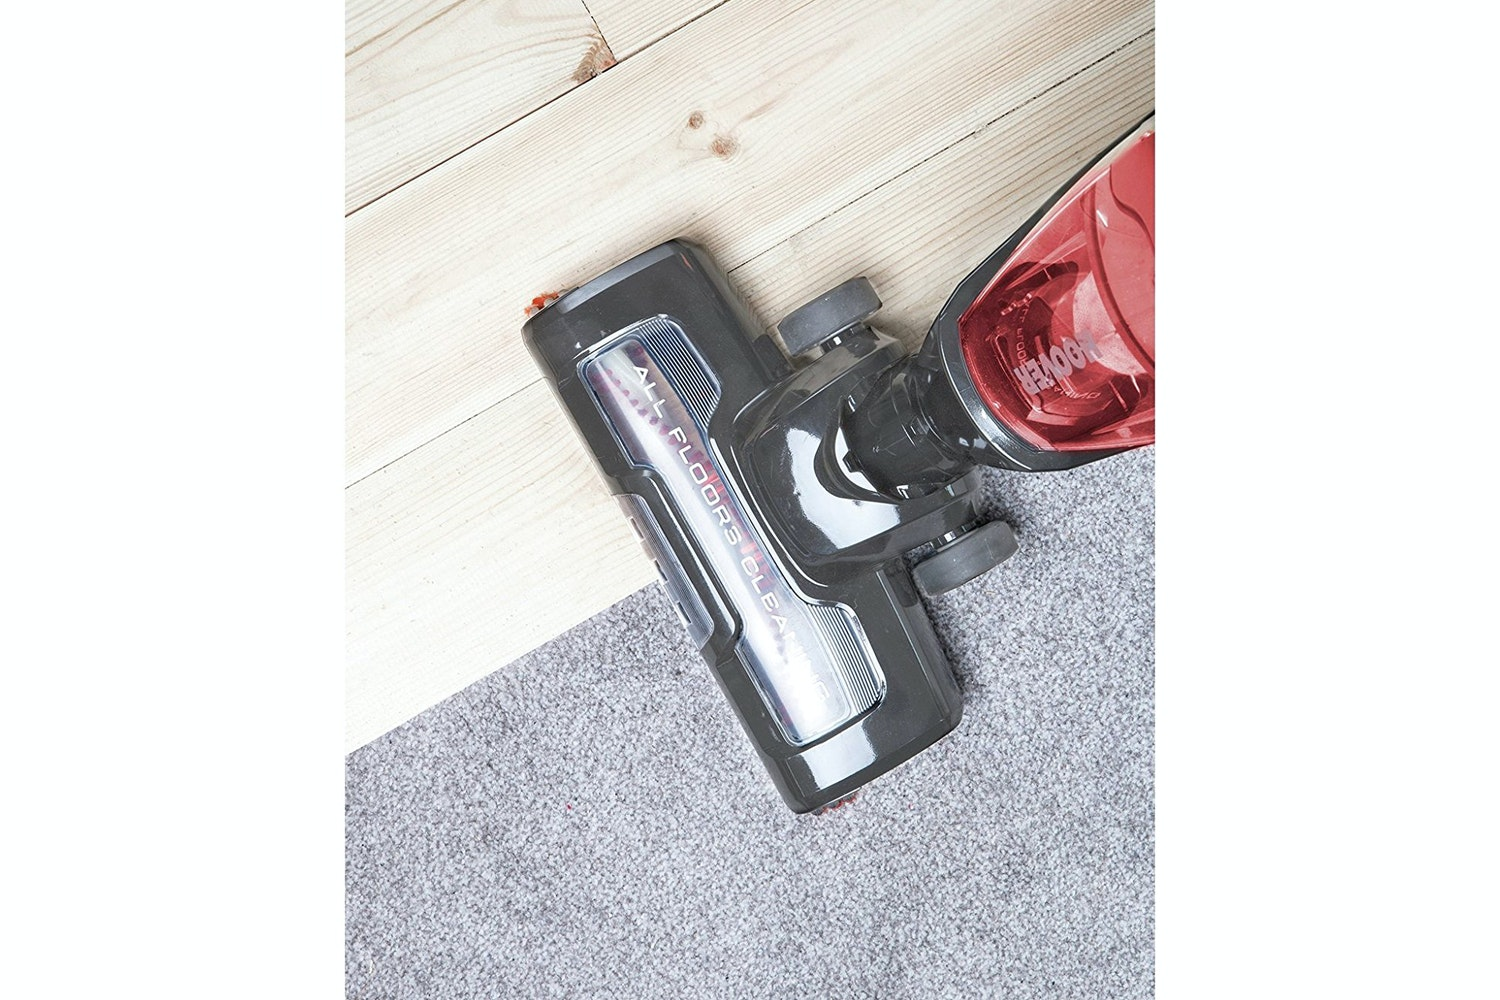 Hoover Freejet 2 In 1 Cordless Vacuum Cleaner | FM144GFJ